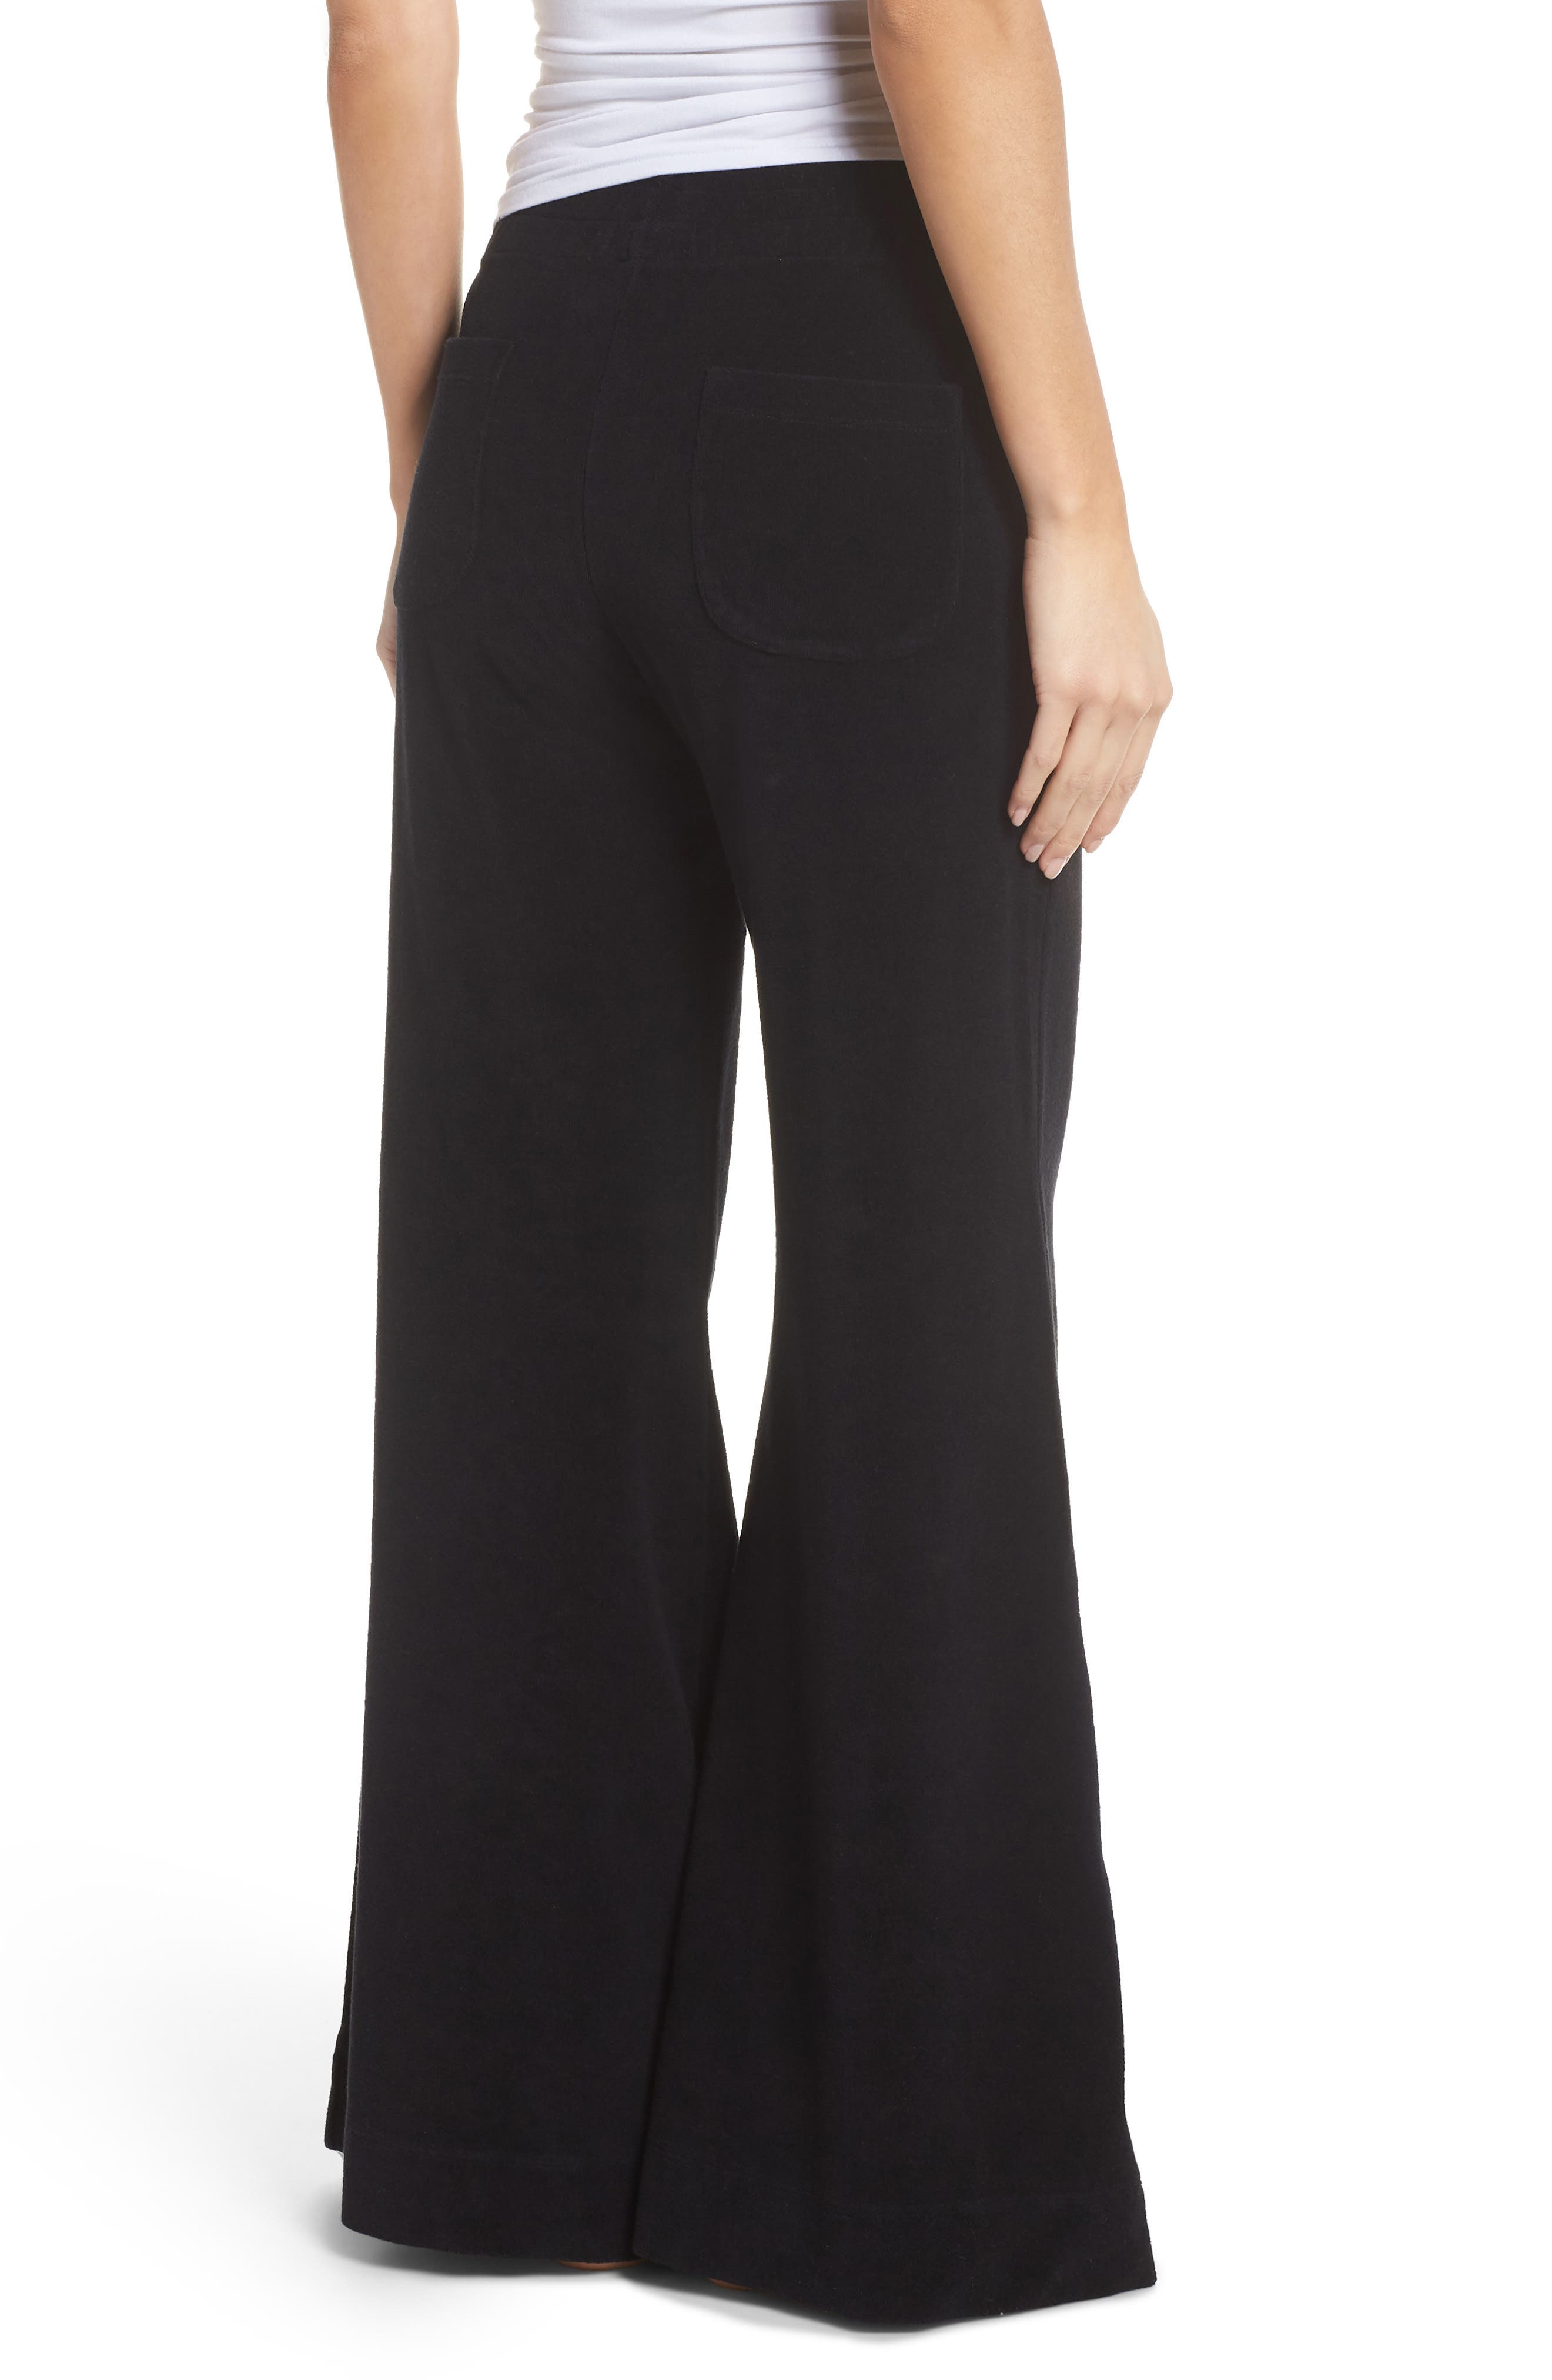 Terry Flare Lounge Pants,                             Alternate thumbnail 2, color,                             001